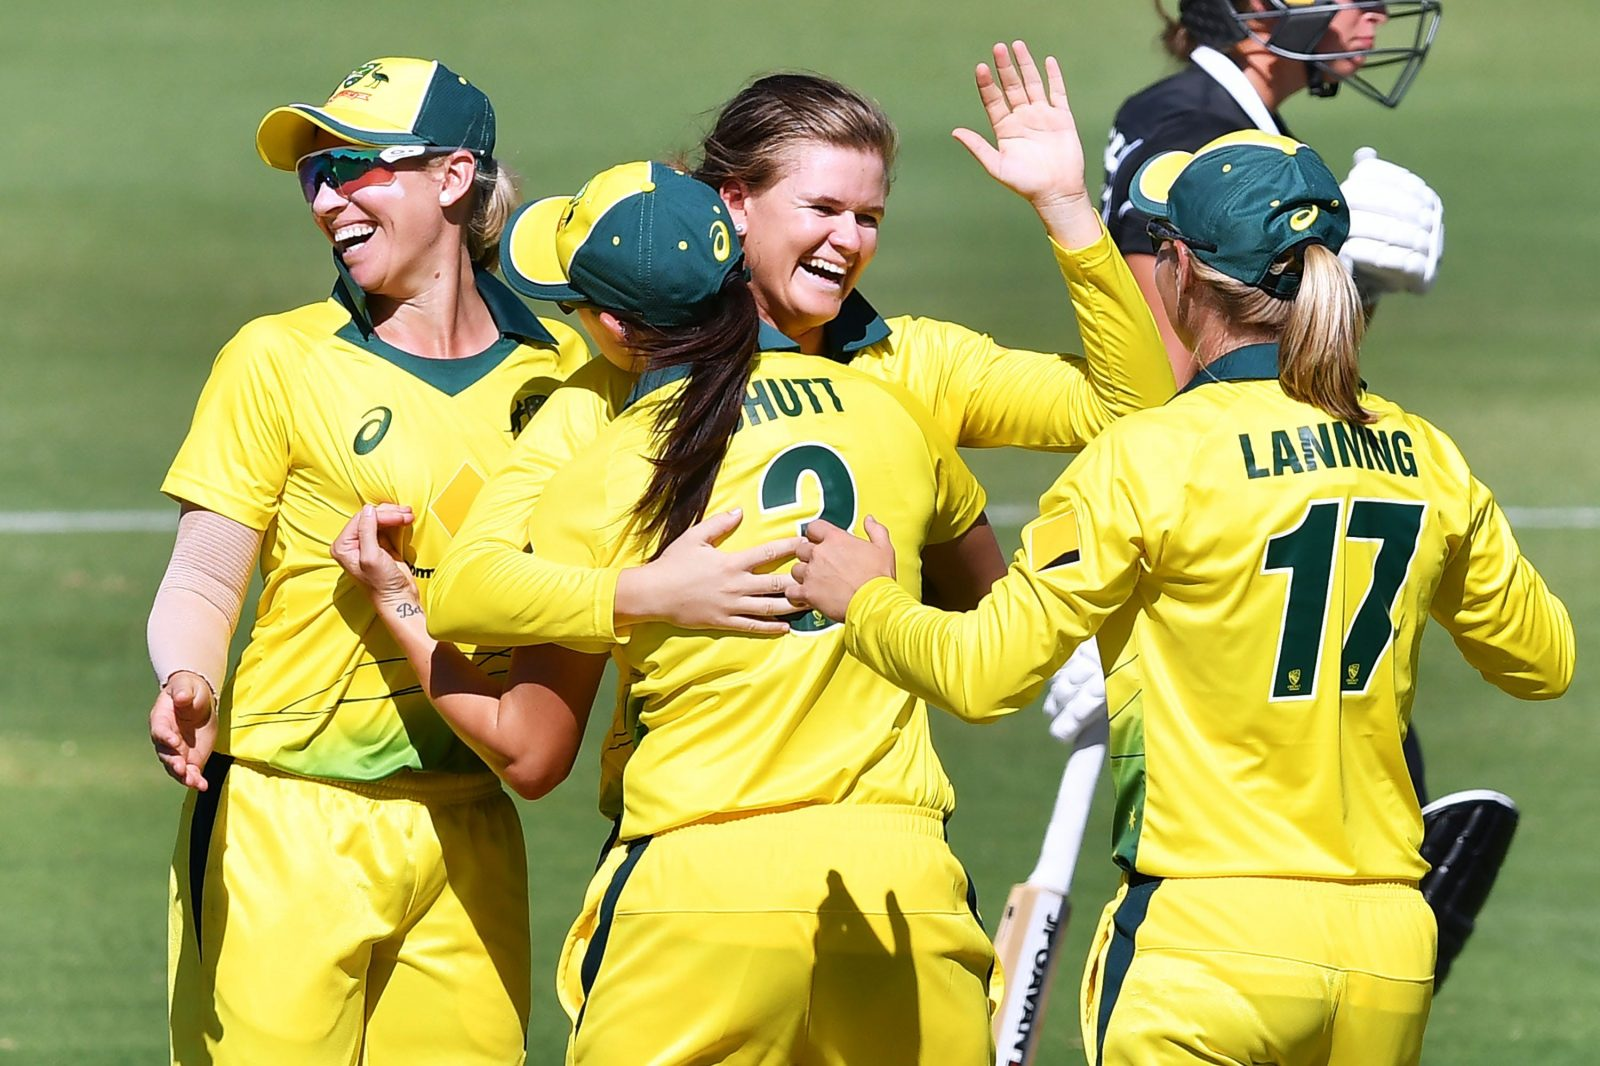 The Aussies celebrating a wicket